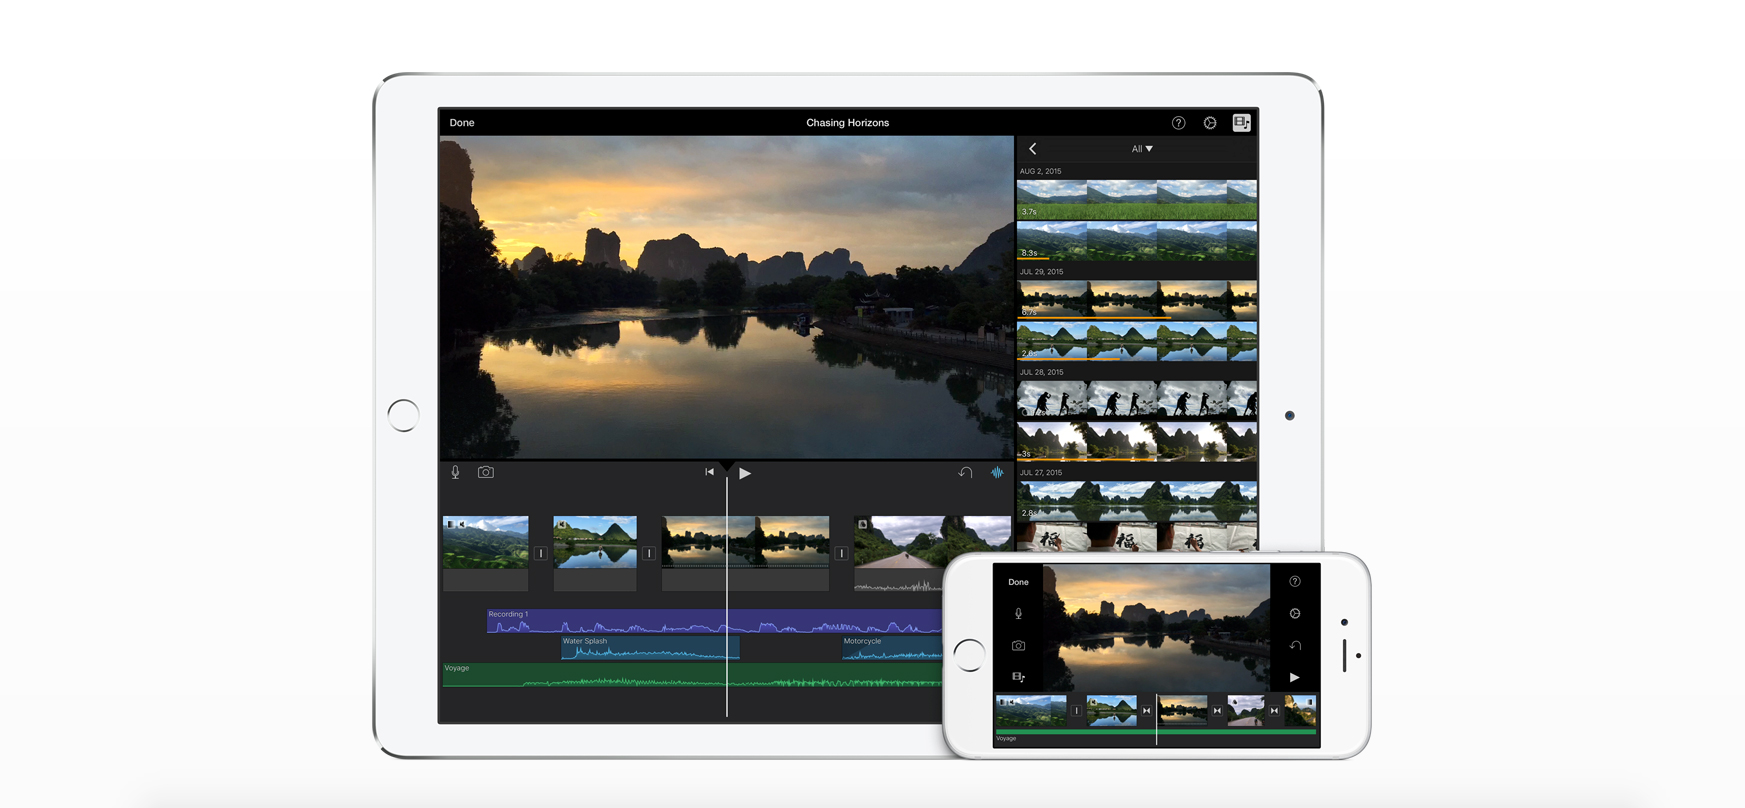 Apple updates iMovie with 4K video support for the iPad Air 2